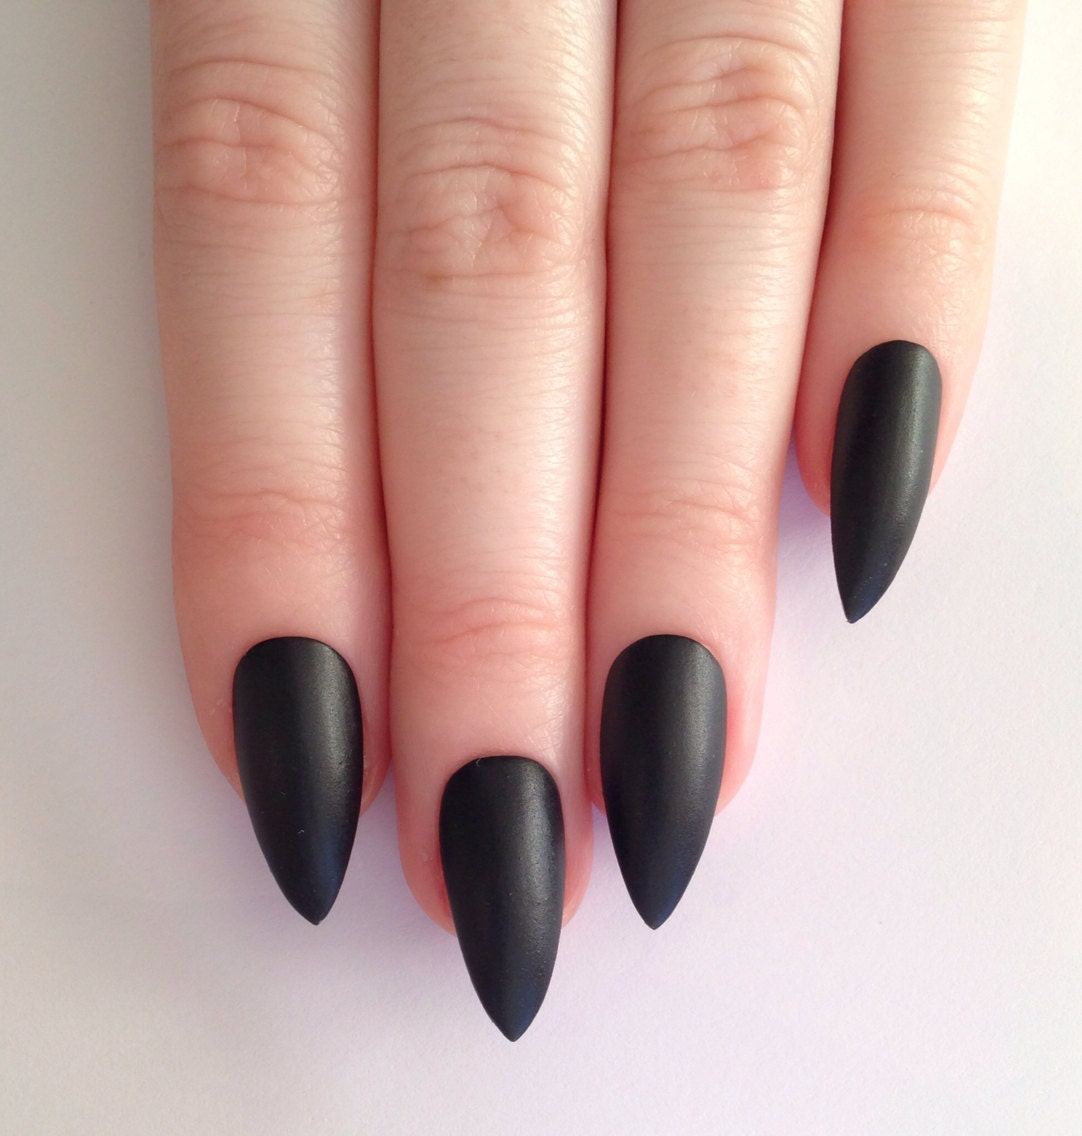 Matte Black Stiletto Nails Nail Designs Nail By